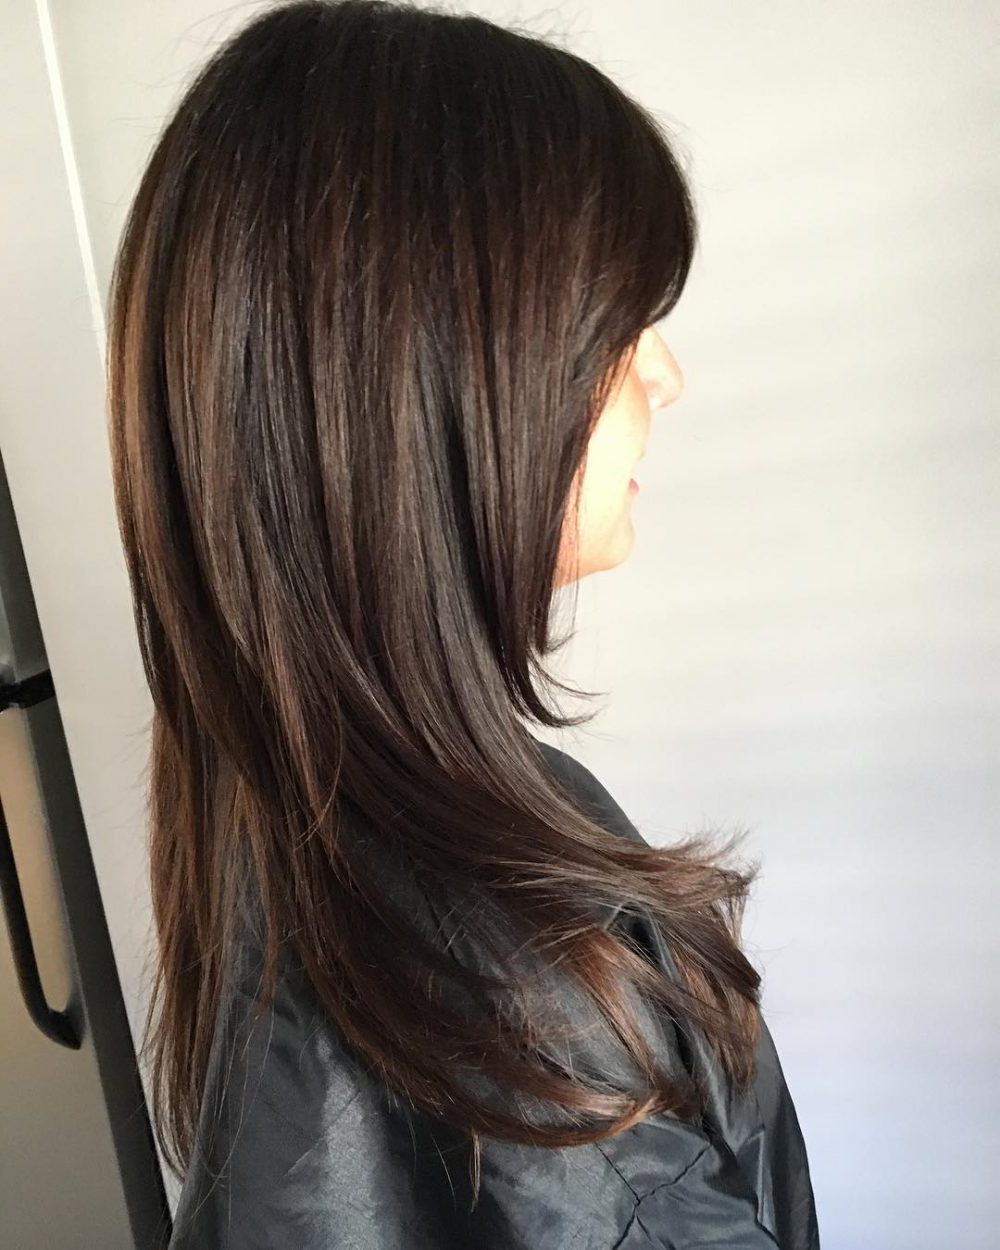 120 Flattering Hairstyles For Straight Hair That Everyone Can Pull Off Throughout Preferred Straight And Chic Long Layers Hairstyles (View 2 of 20)